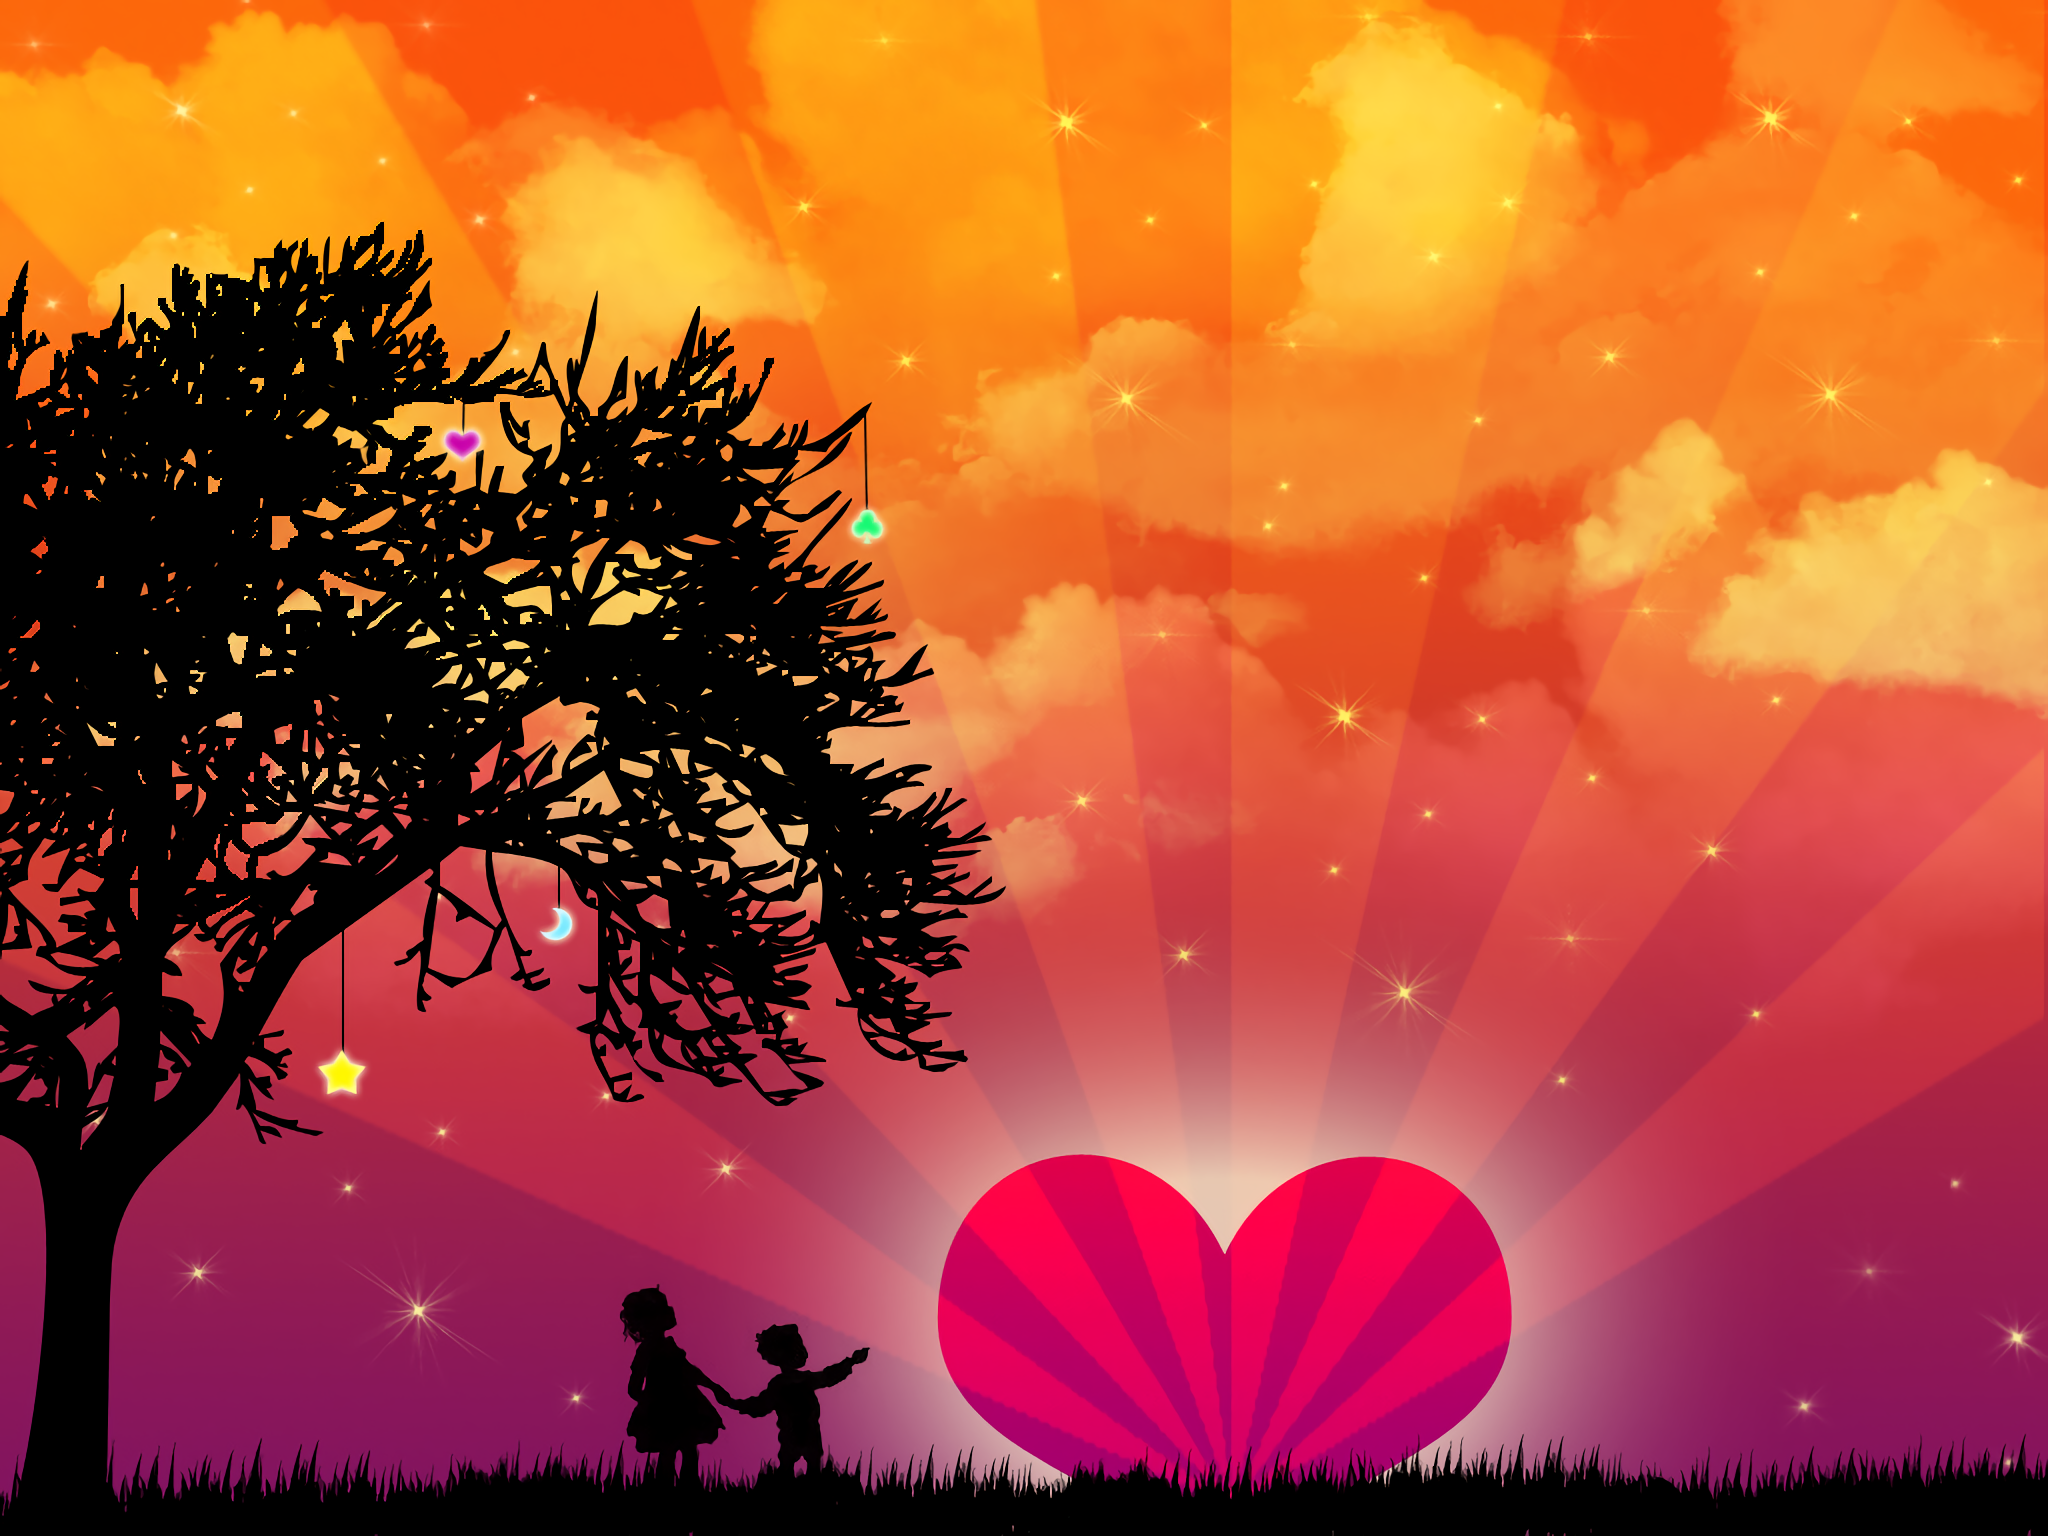 Love Wallpapers Mobile : cute Love Wallpaper Full HD Download Desktop Mobile ...